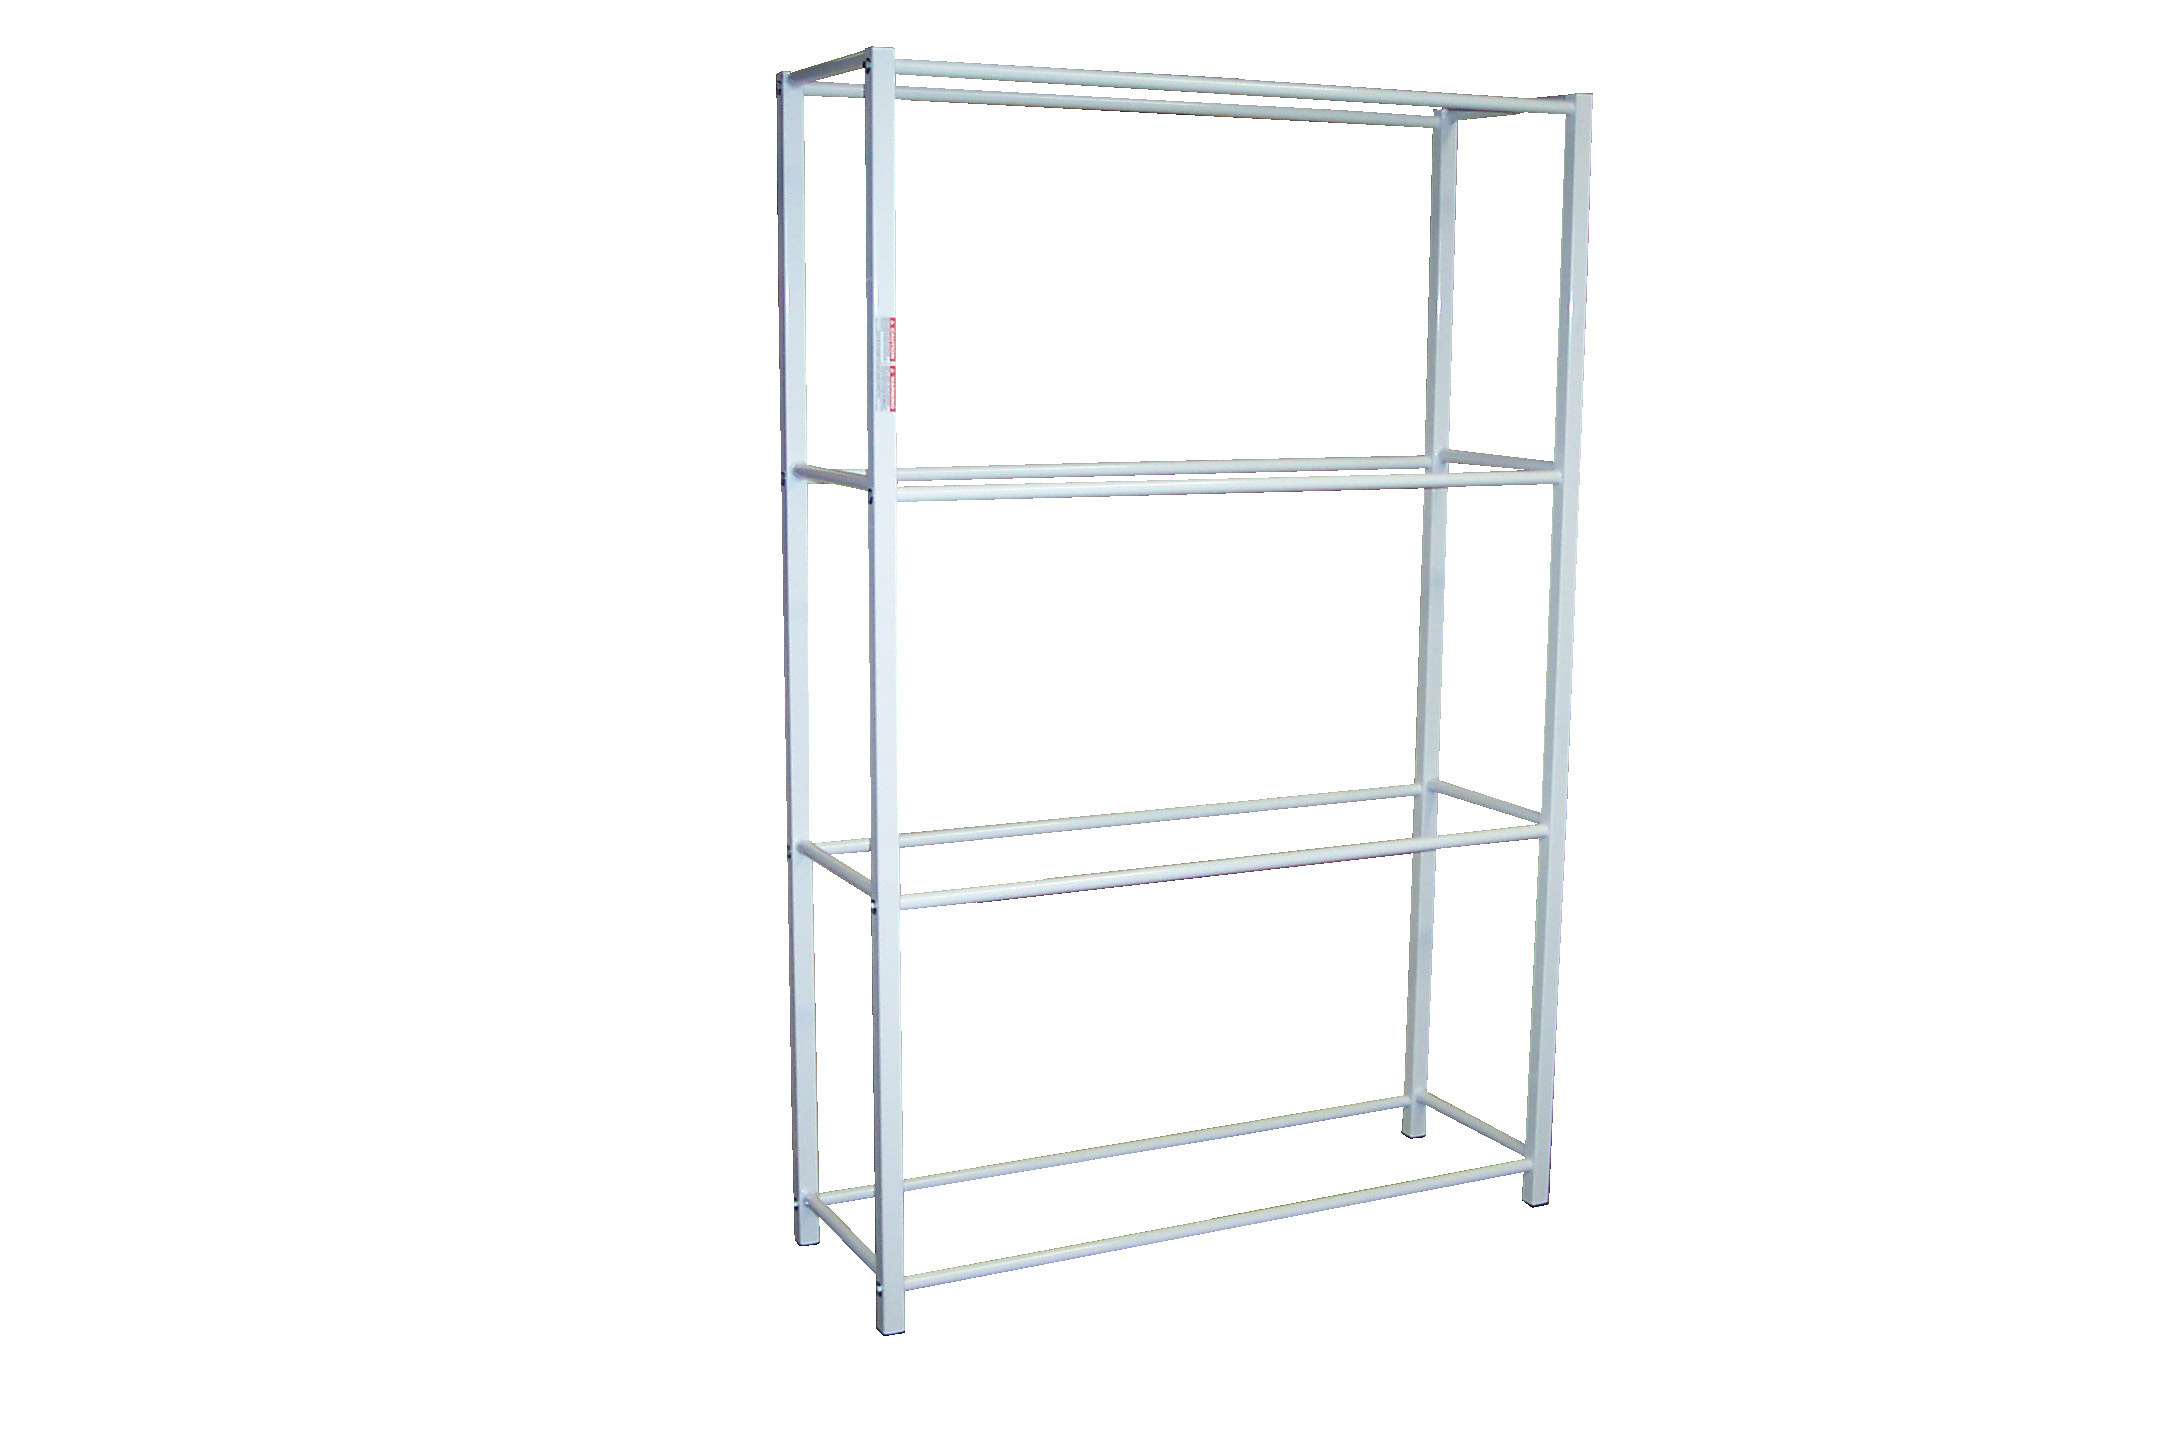 MAX#840 4-Tier Ball Rack